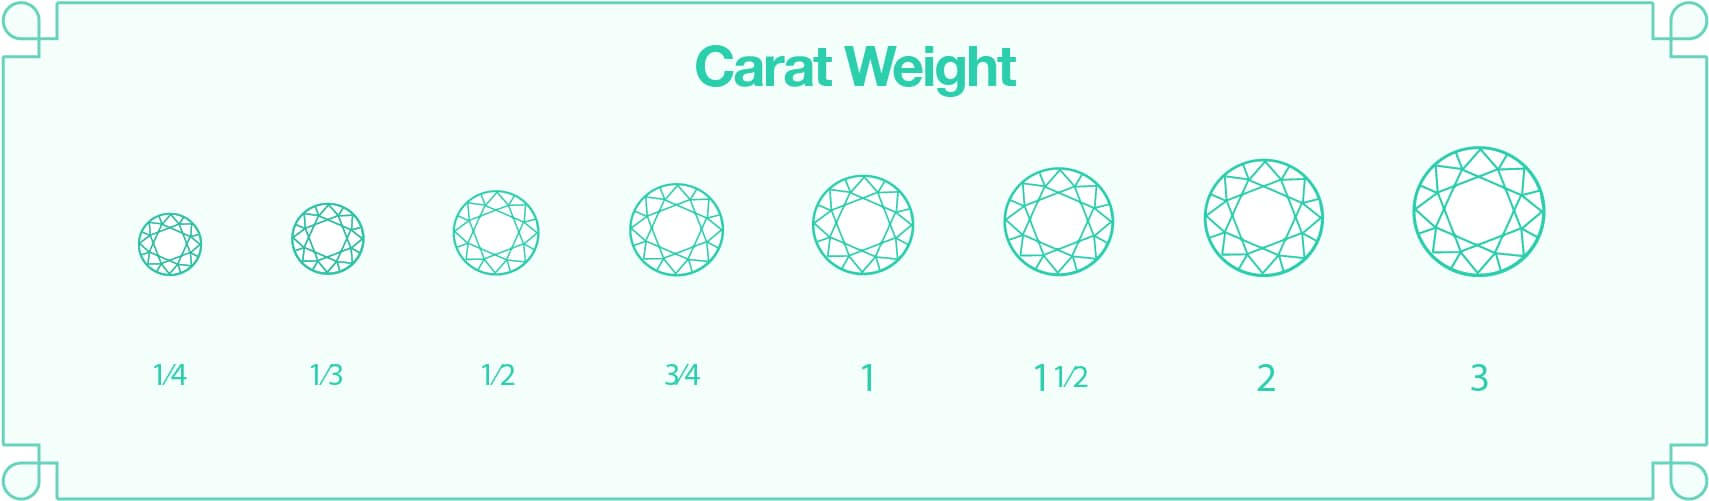 diamond co thinkpawsitive chart carat weight